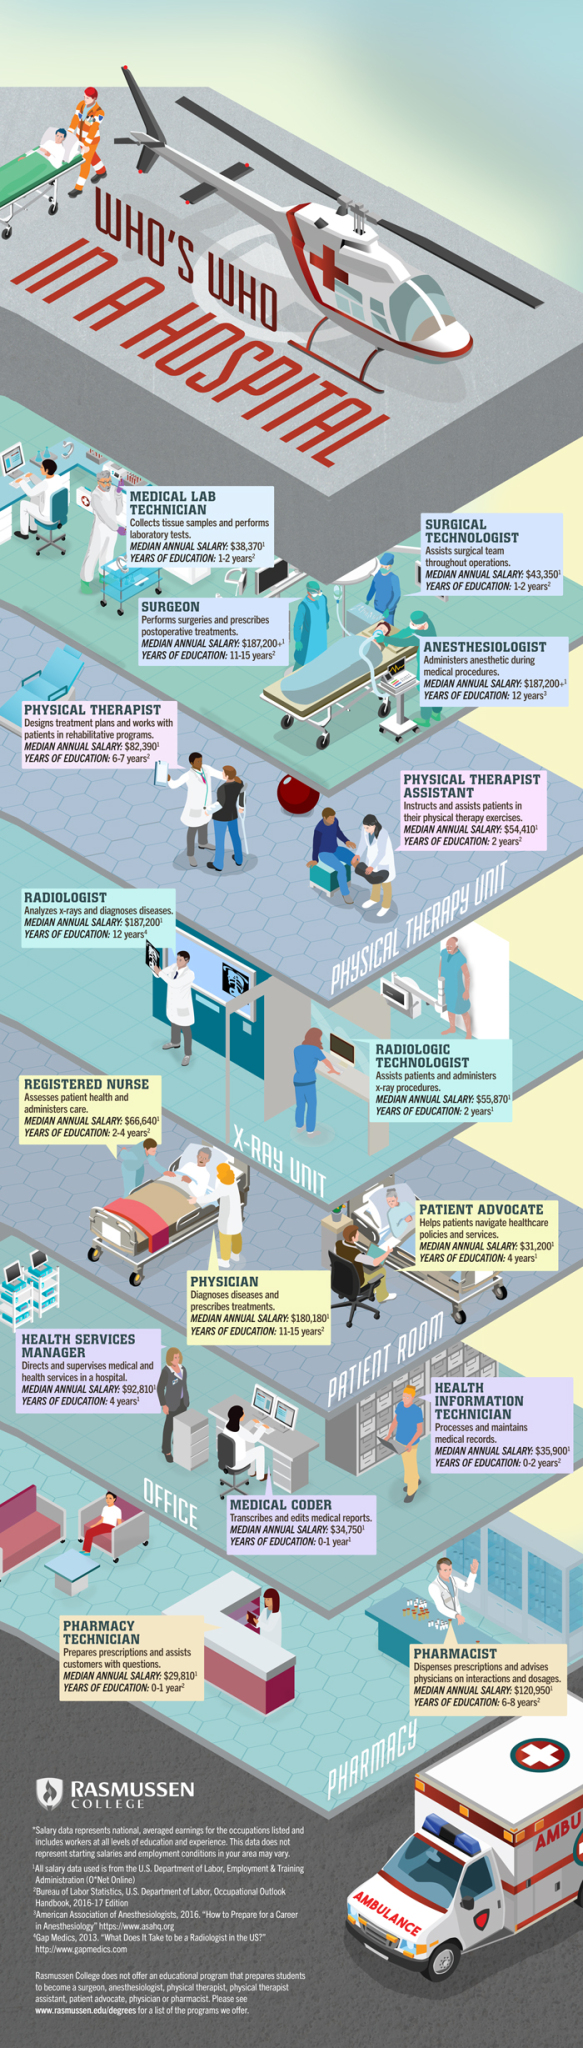 who's who in hospital medical jobs infographic